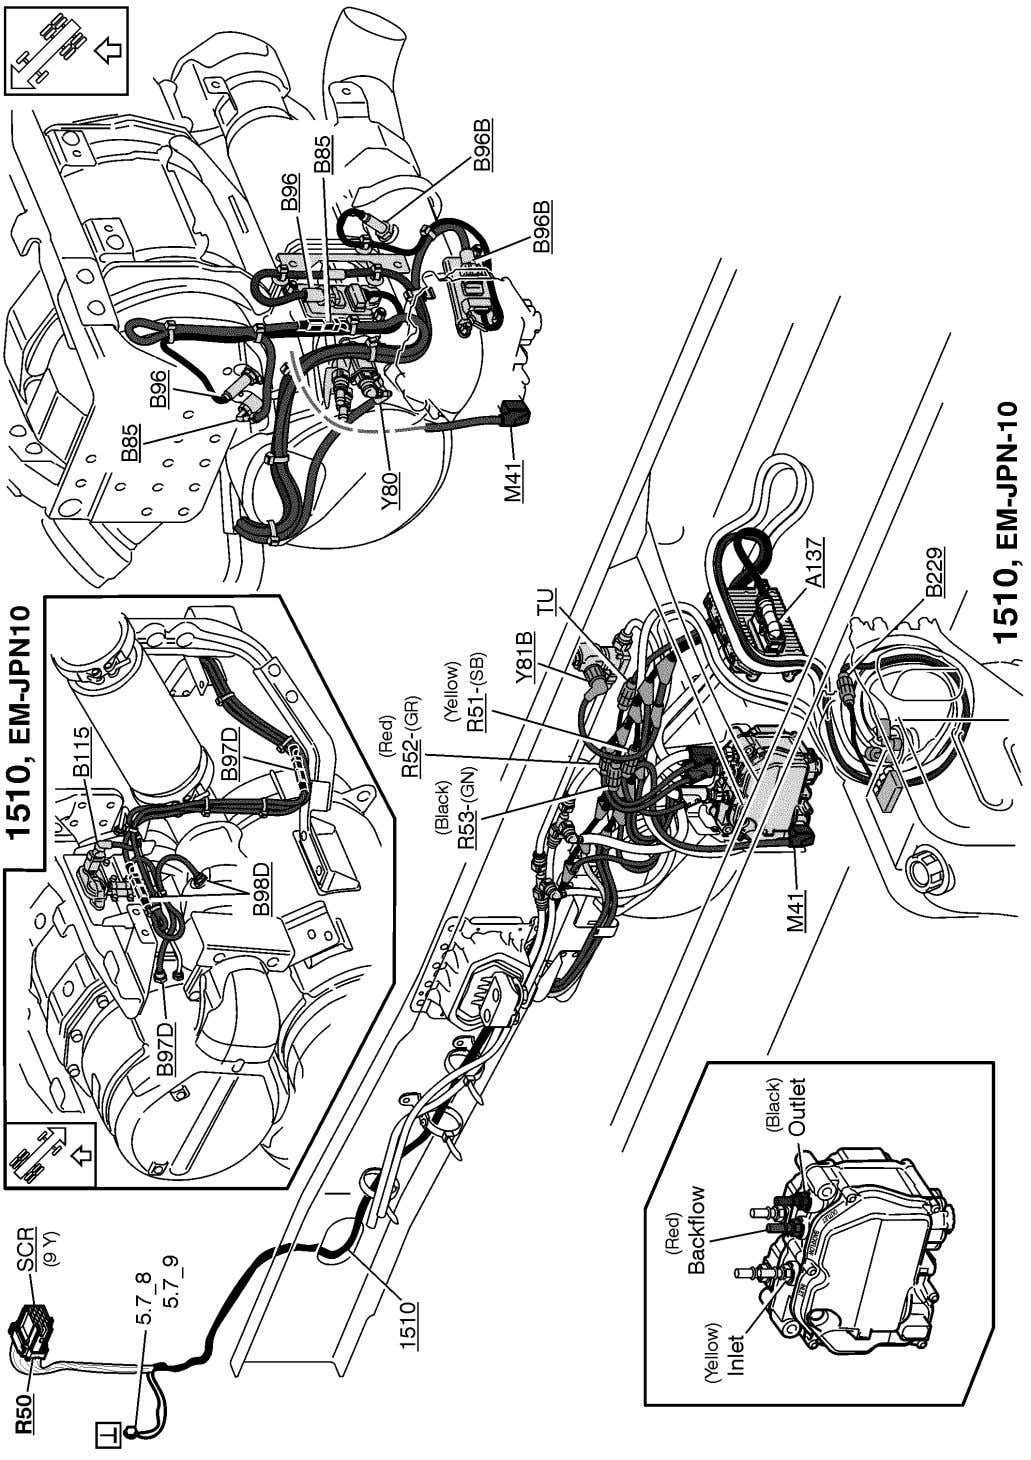 T3056934 Wiring diagram Page 225 (298)